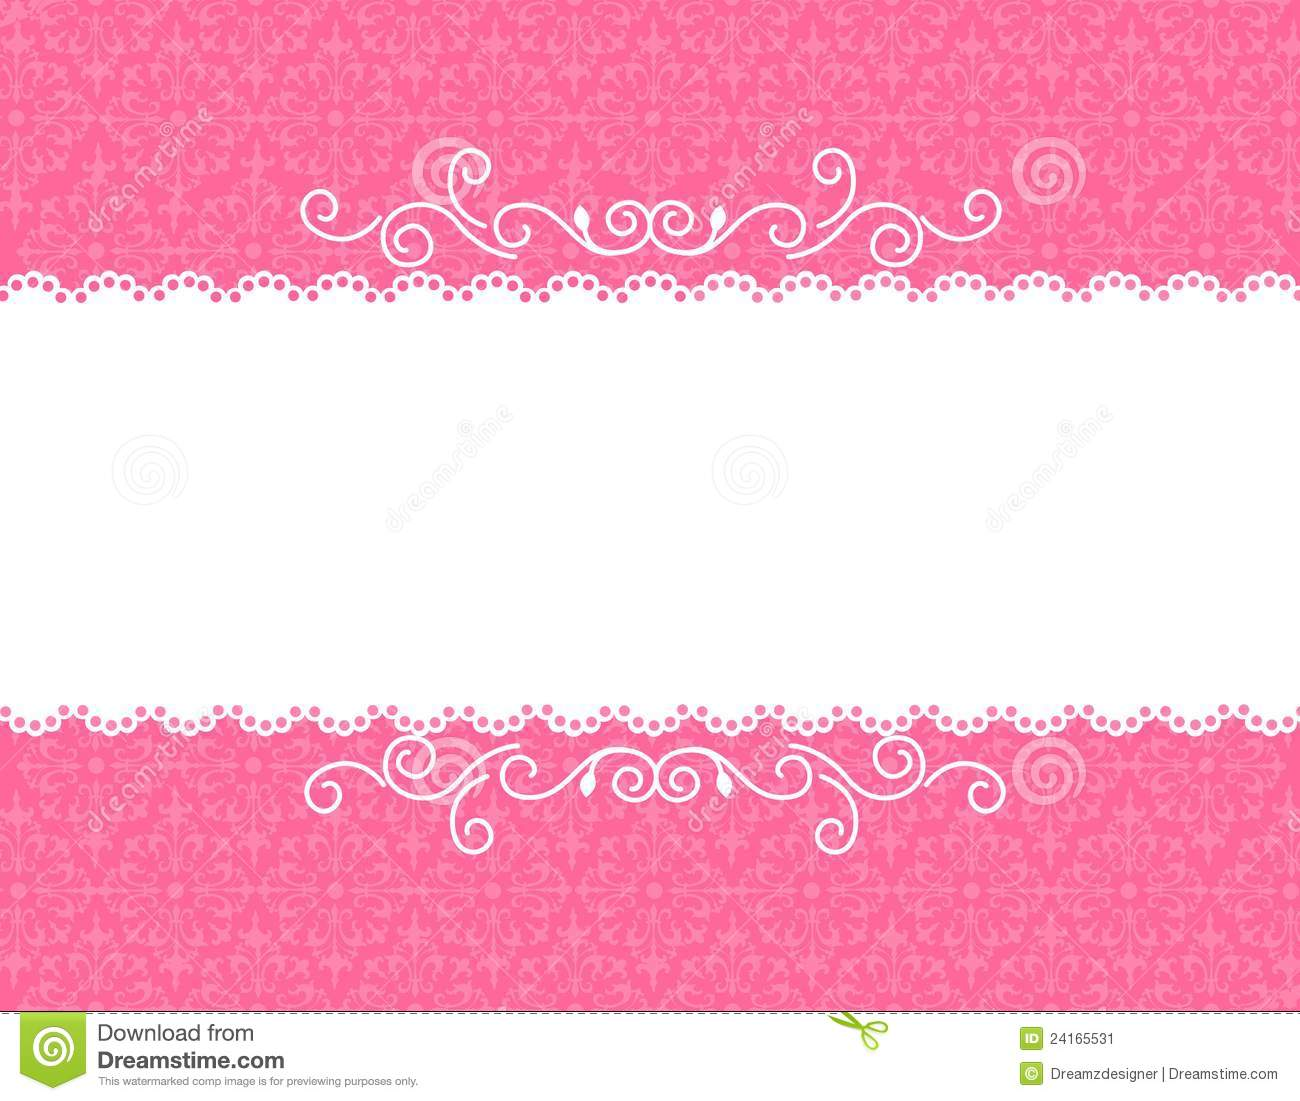 Barbie Themed Invitation Card for good invitations example